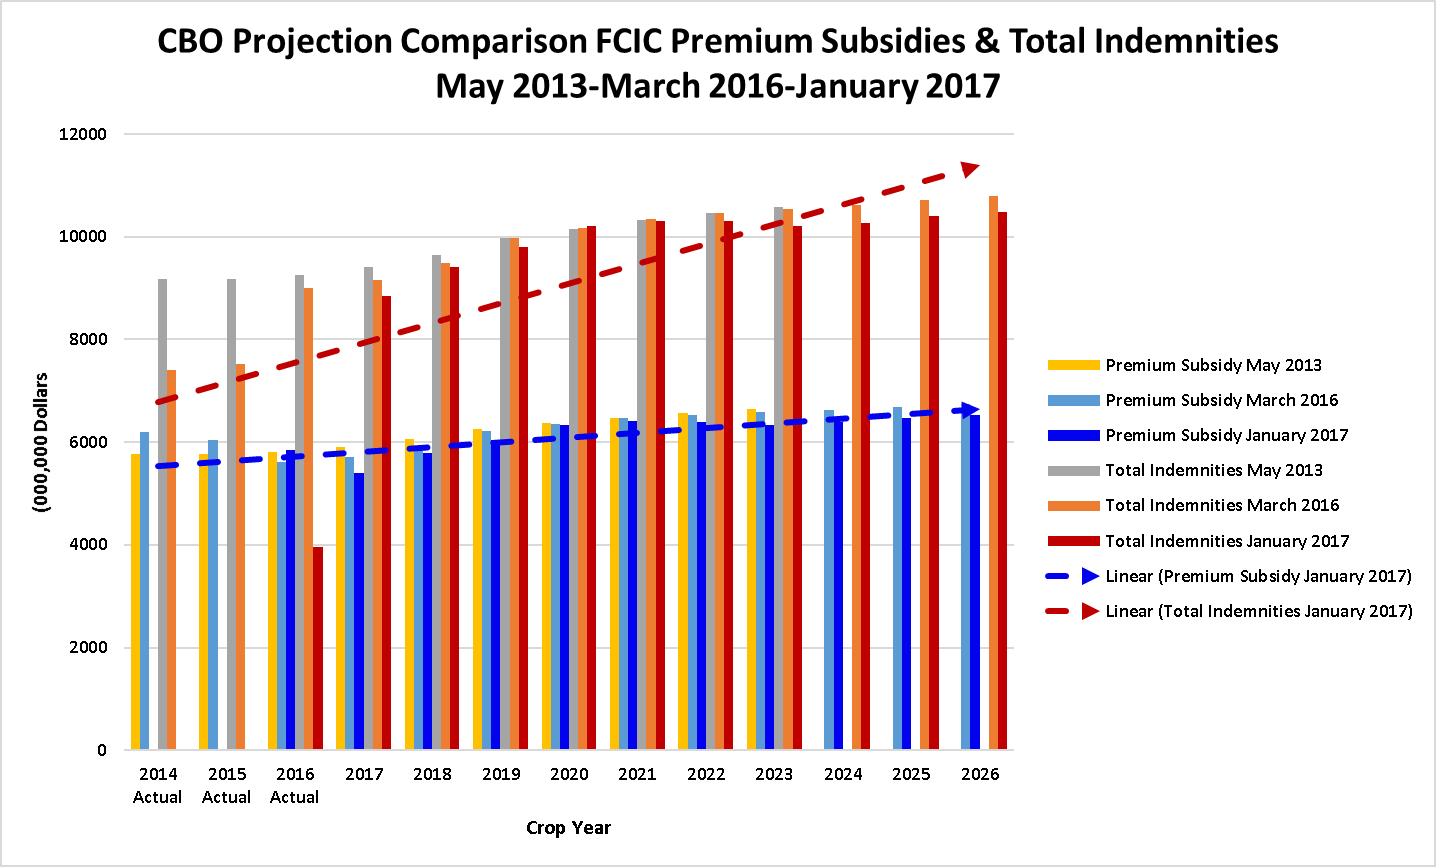 Fed Crop Ins Prem Subsidies & Total Indem